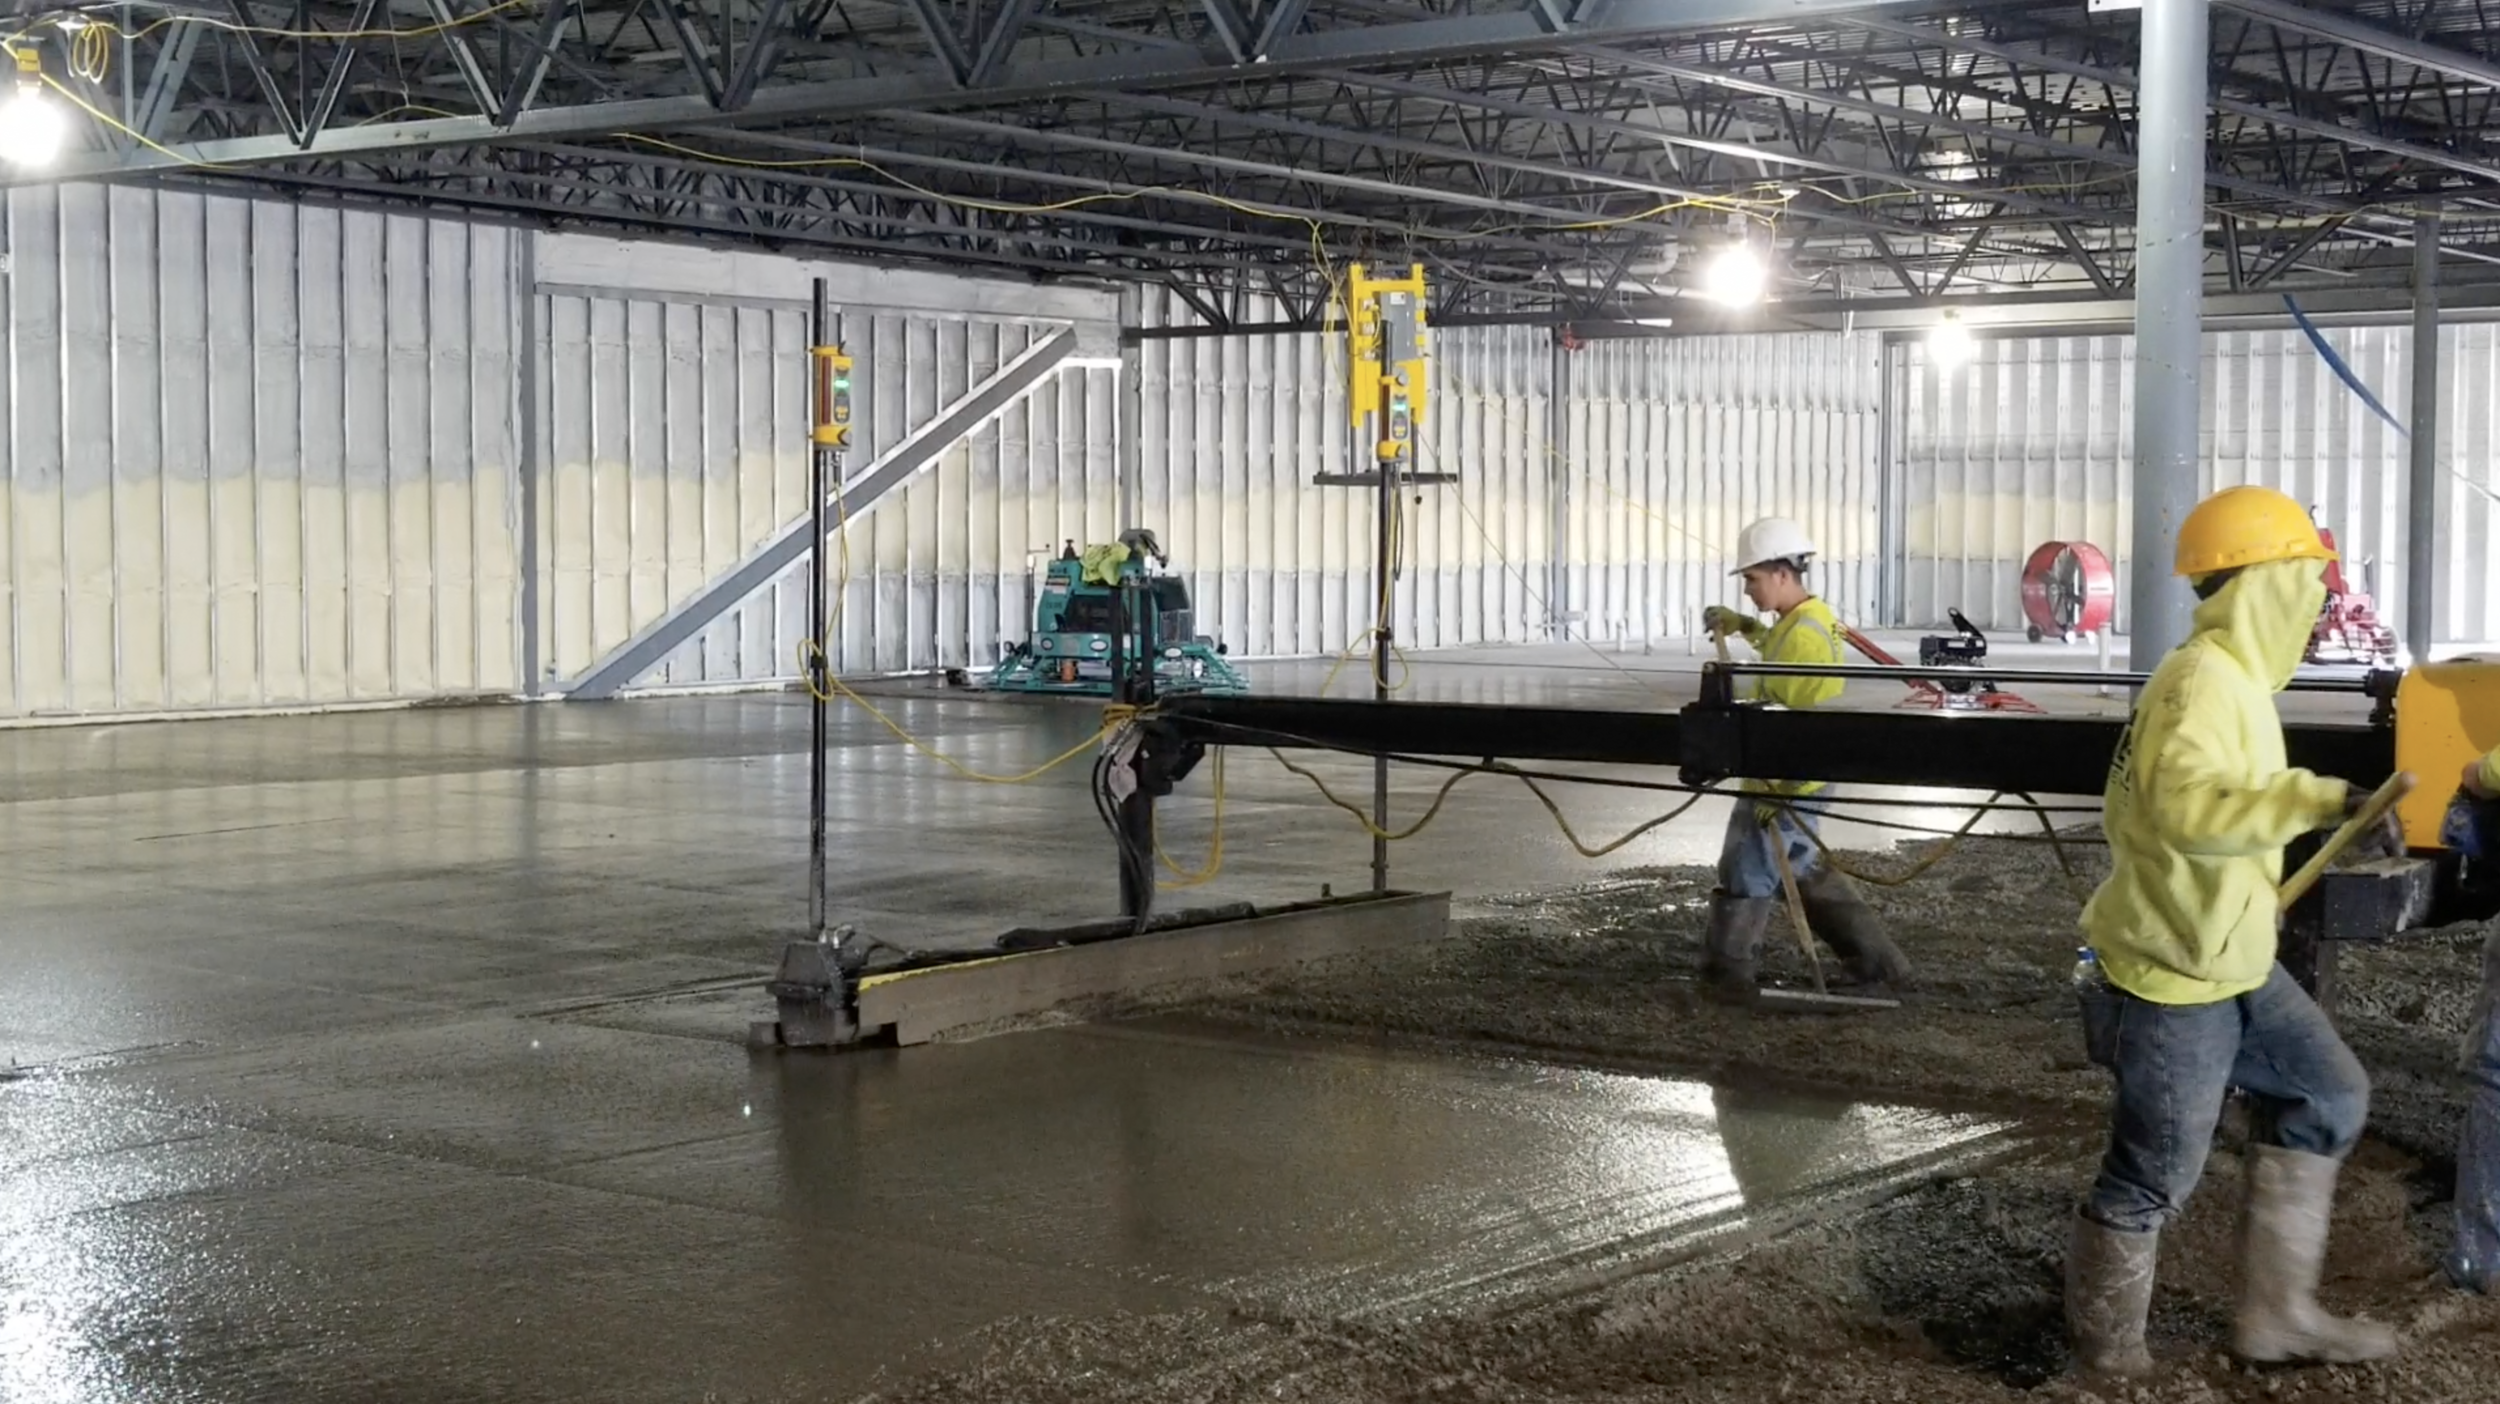 With a laser screed we can work faster with less labor, saving you money.